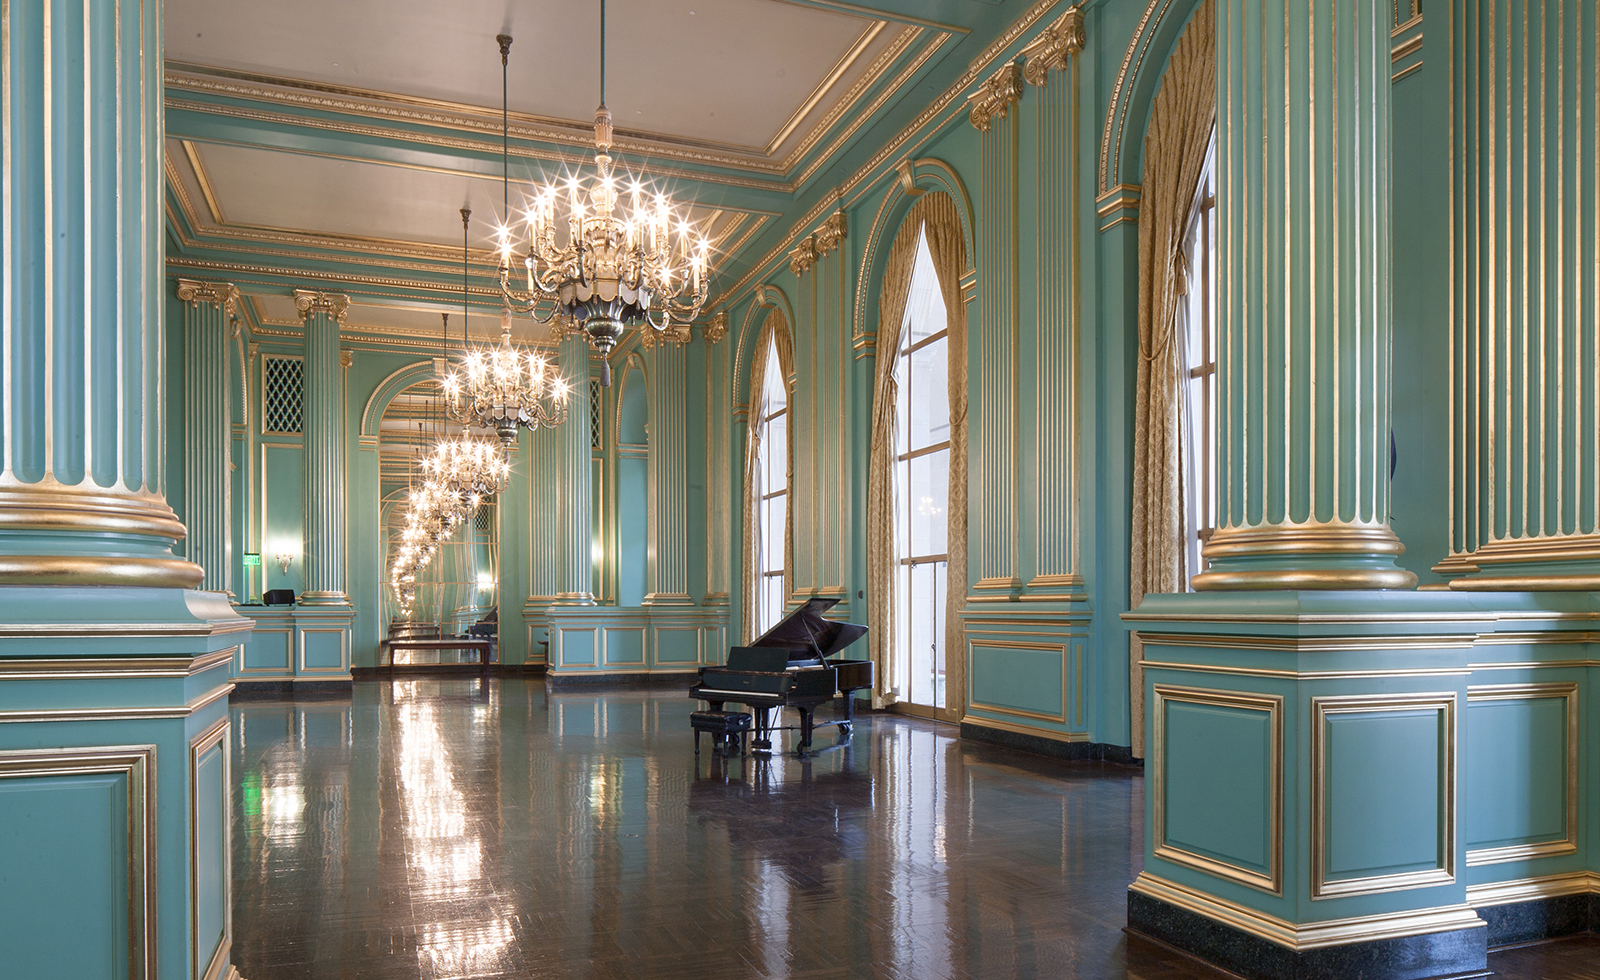 Known for its distinct color, soaring ceiling, and Beaux-Arts architecture, the Green Room hosts more than 200 functions a year.